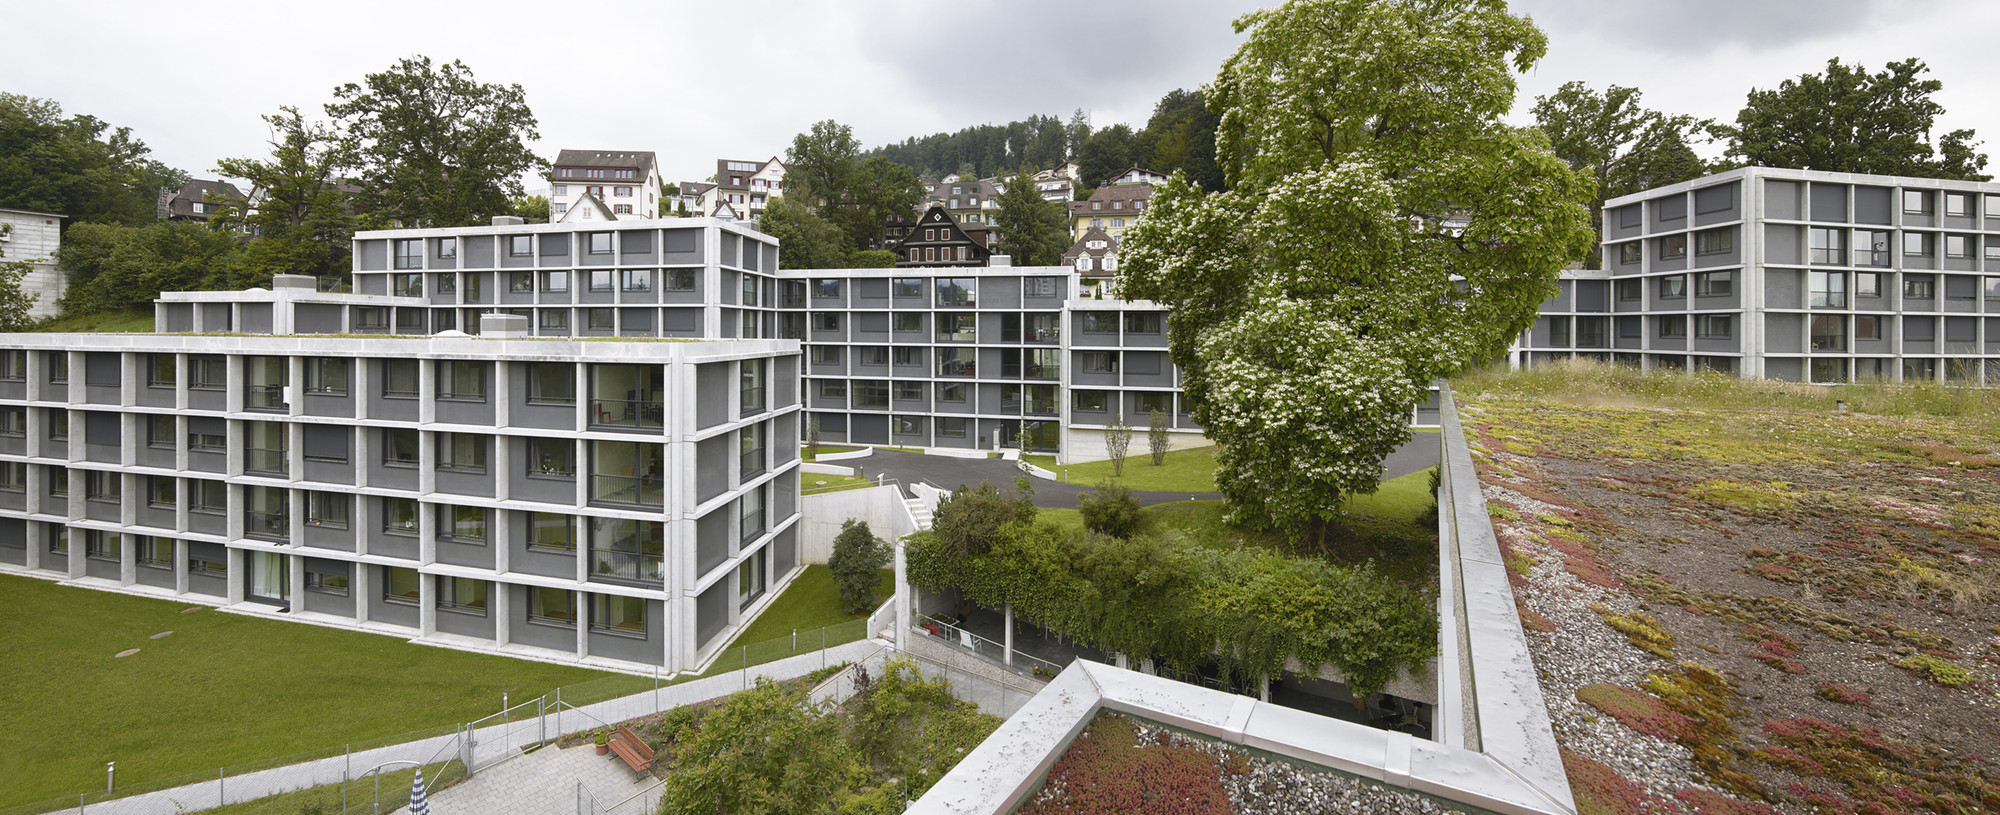 Lucerne tag archdaily student apartments in luzern durisch nolli architetti walter mair solutioingenieria Images